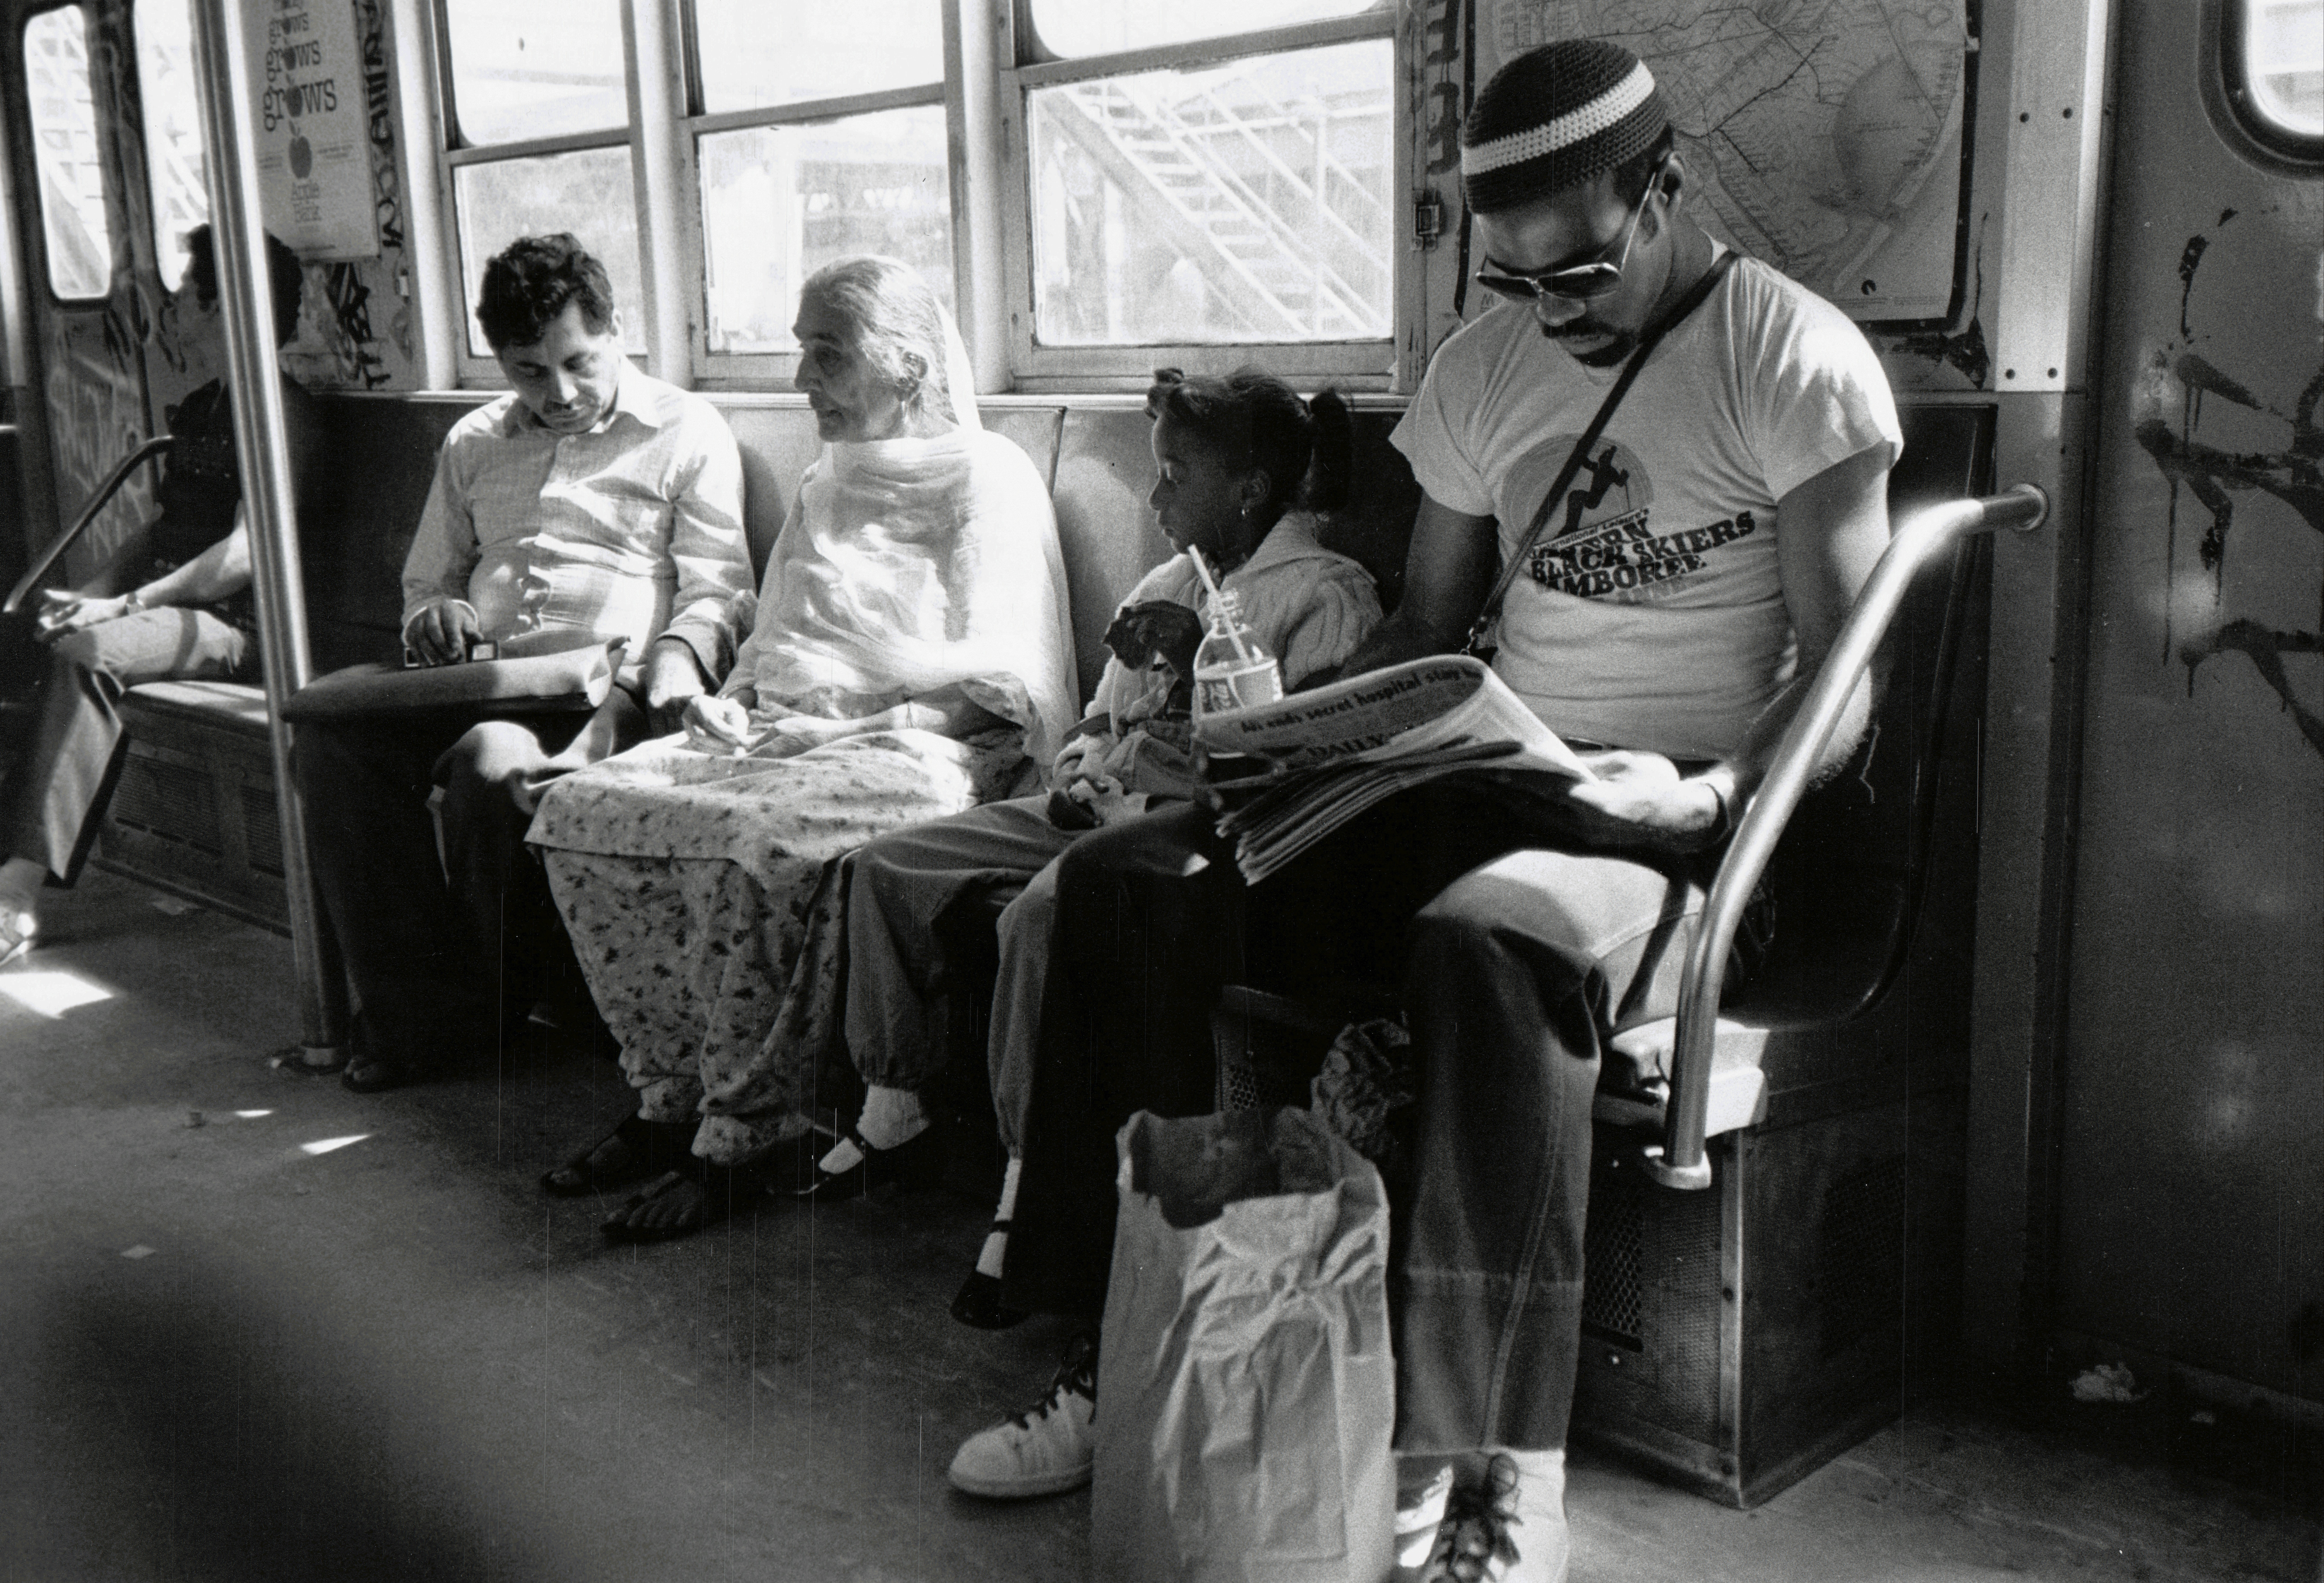 , 'Subway Scene,' 1986, Fountain House Gallery